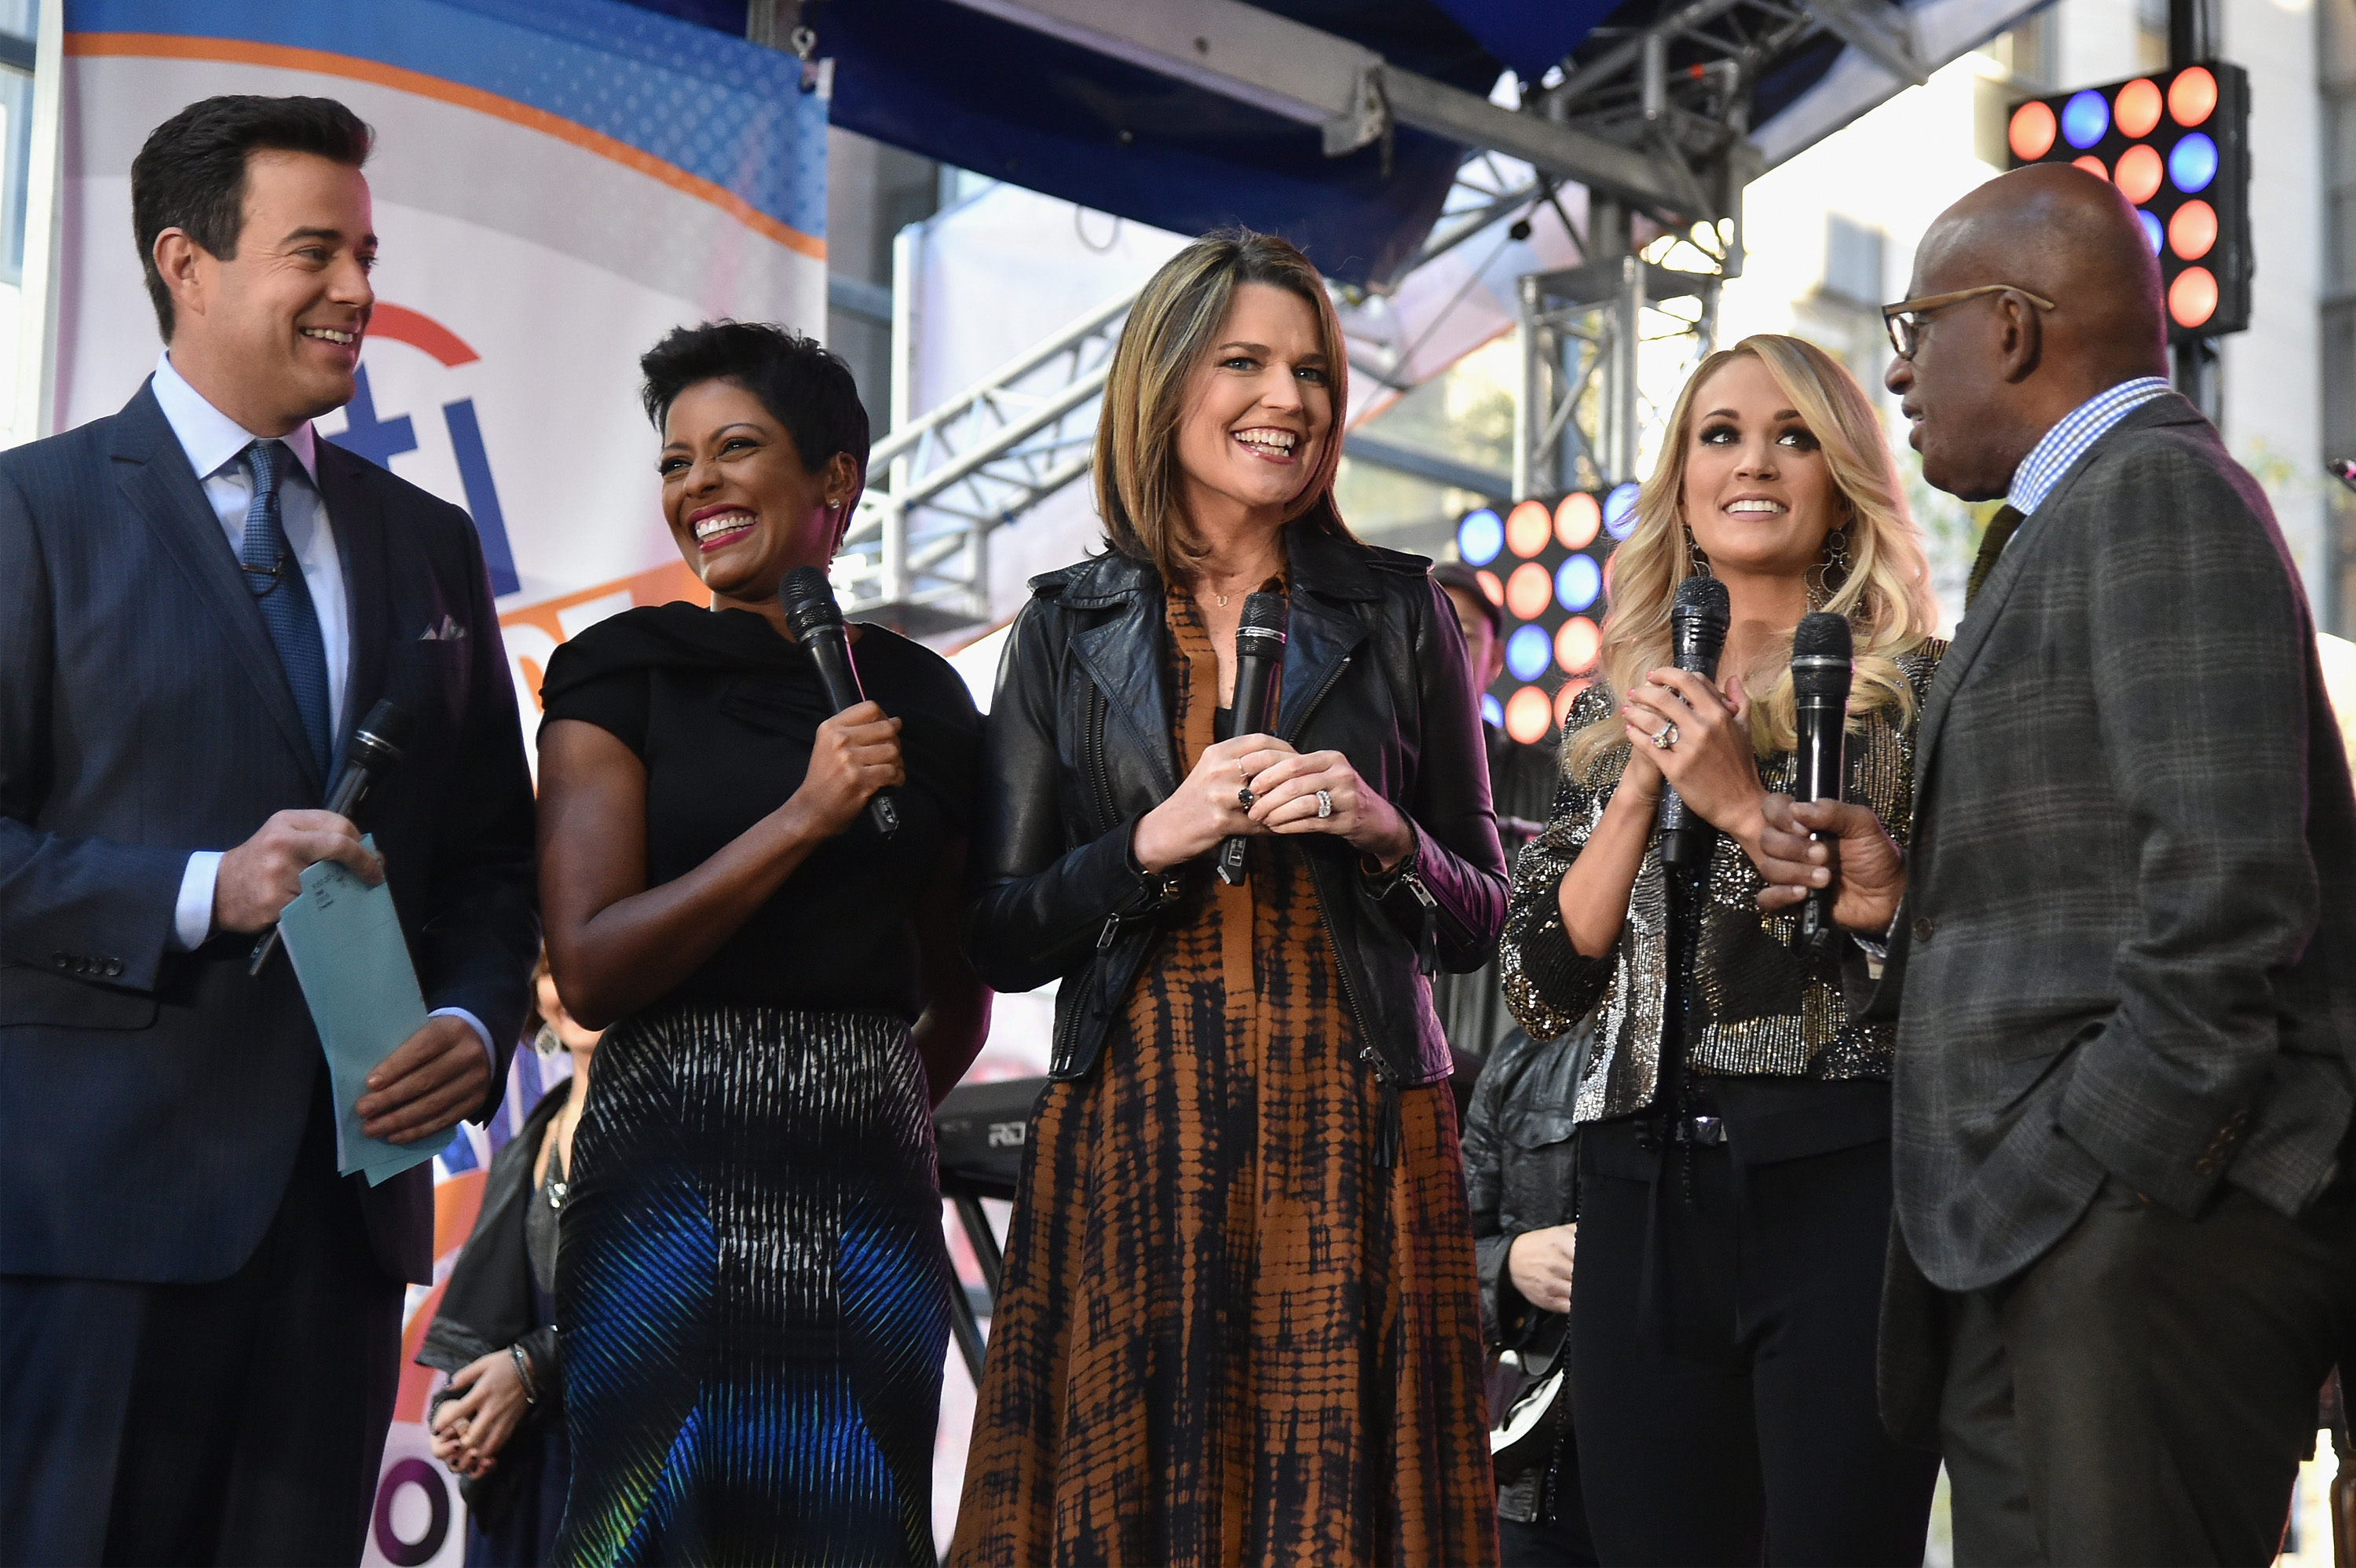 Pictured (L-R): Today's Carson Daly, Tamron Hall, and Savannah Guthrie; Carrie Underwood; and Today's Al Roker. Photo: Mike Coppola/Getty Images for Citi.